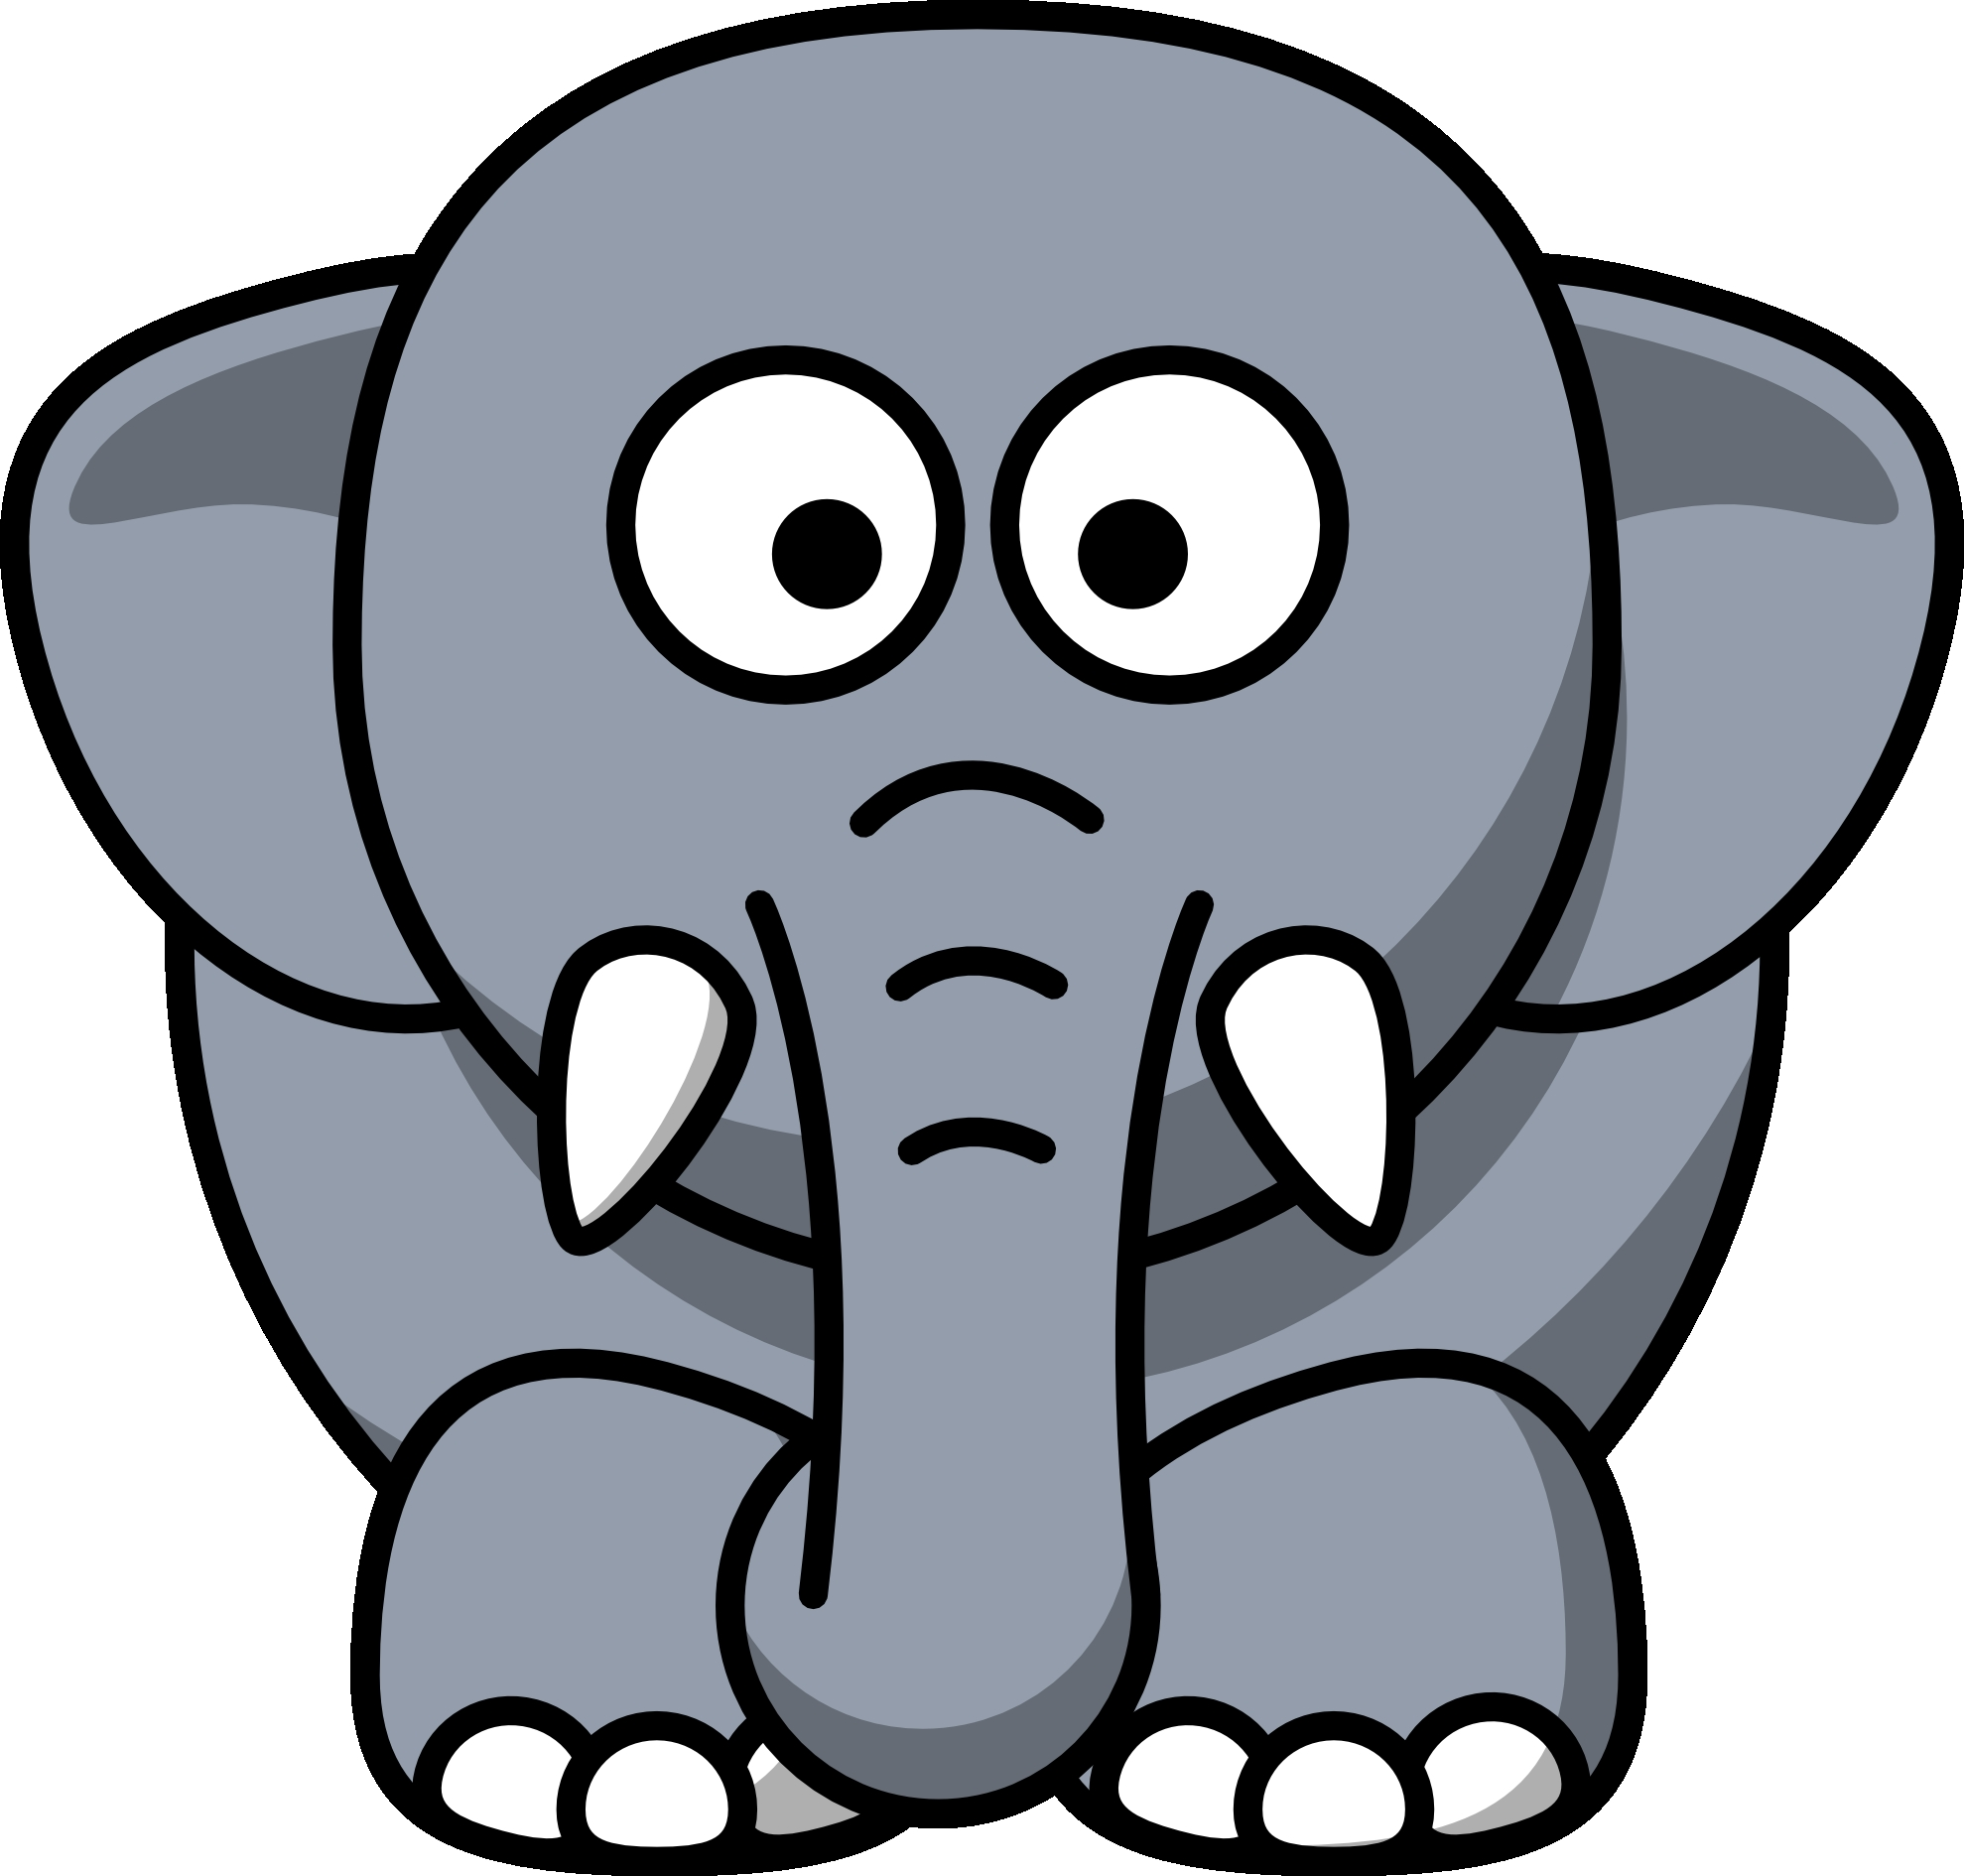 Awesome collection digital k. 1 clipart elephant